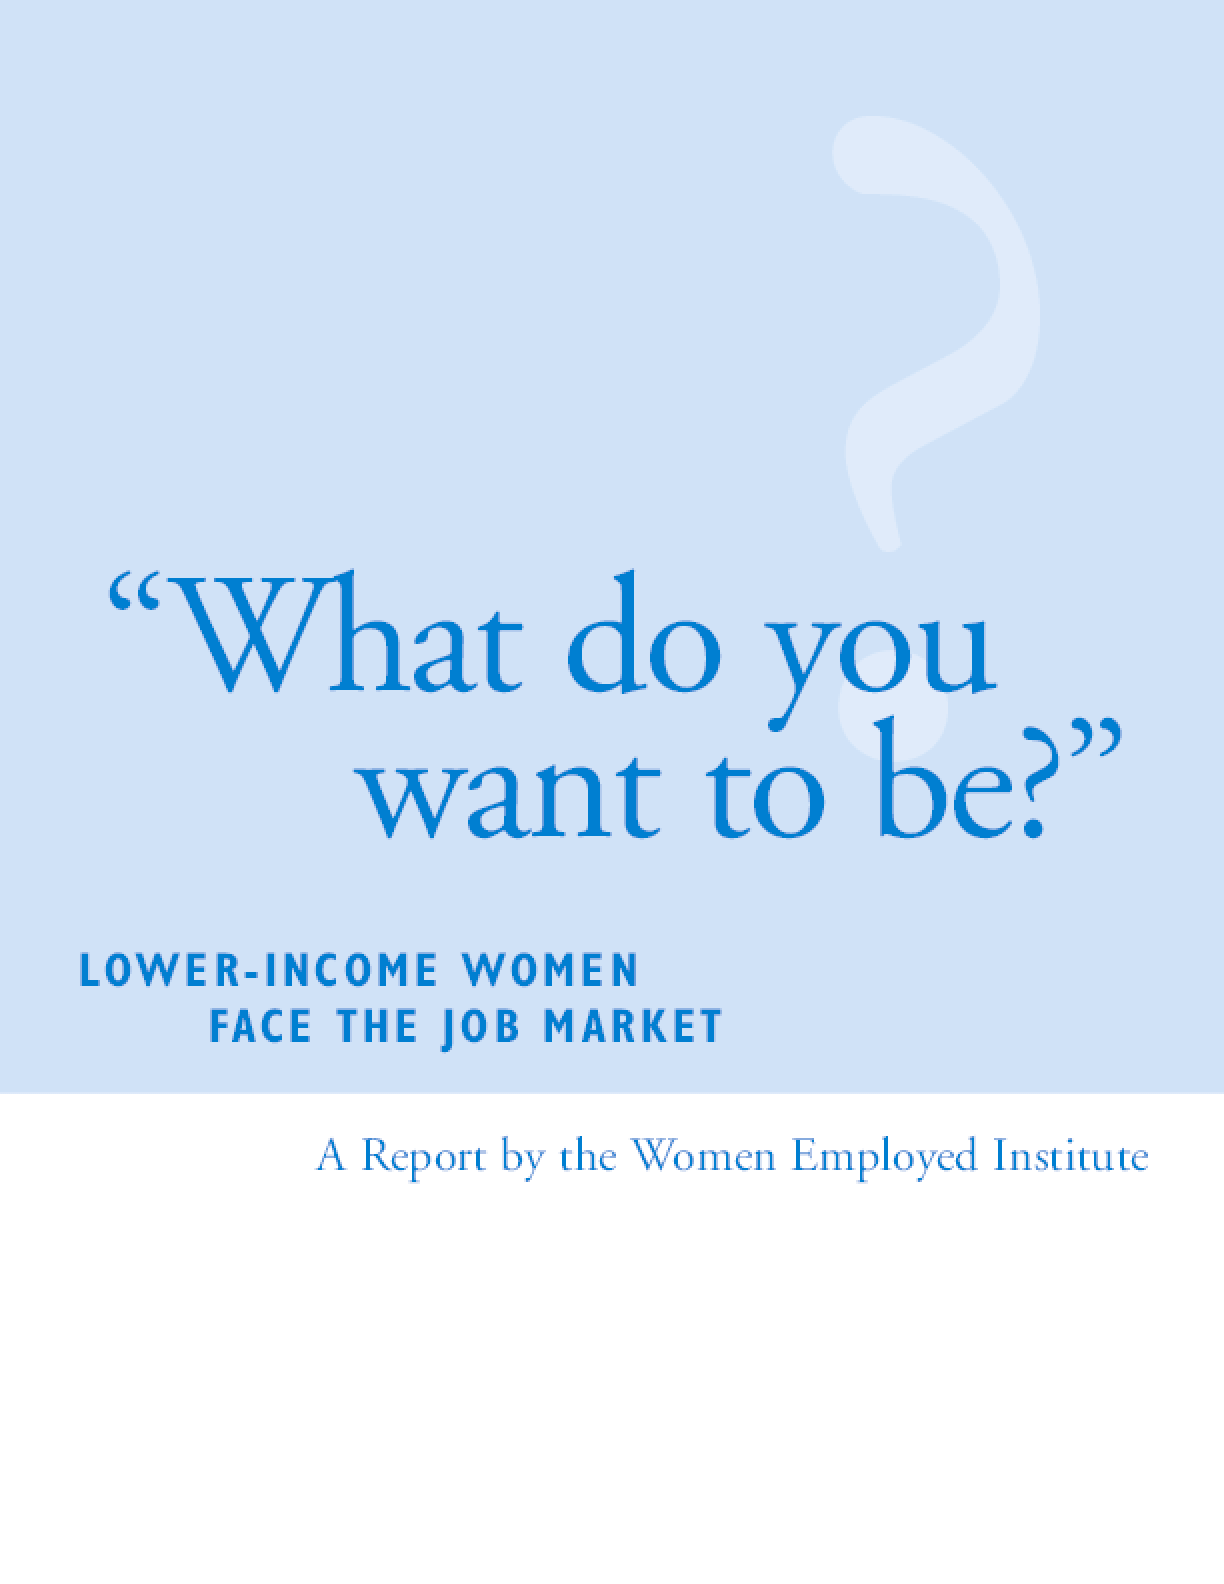 What do you want to be? Lower-Income Women Face the Job Market